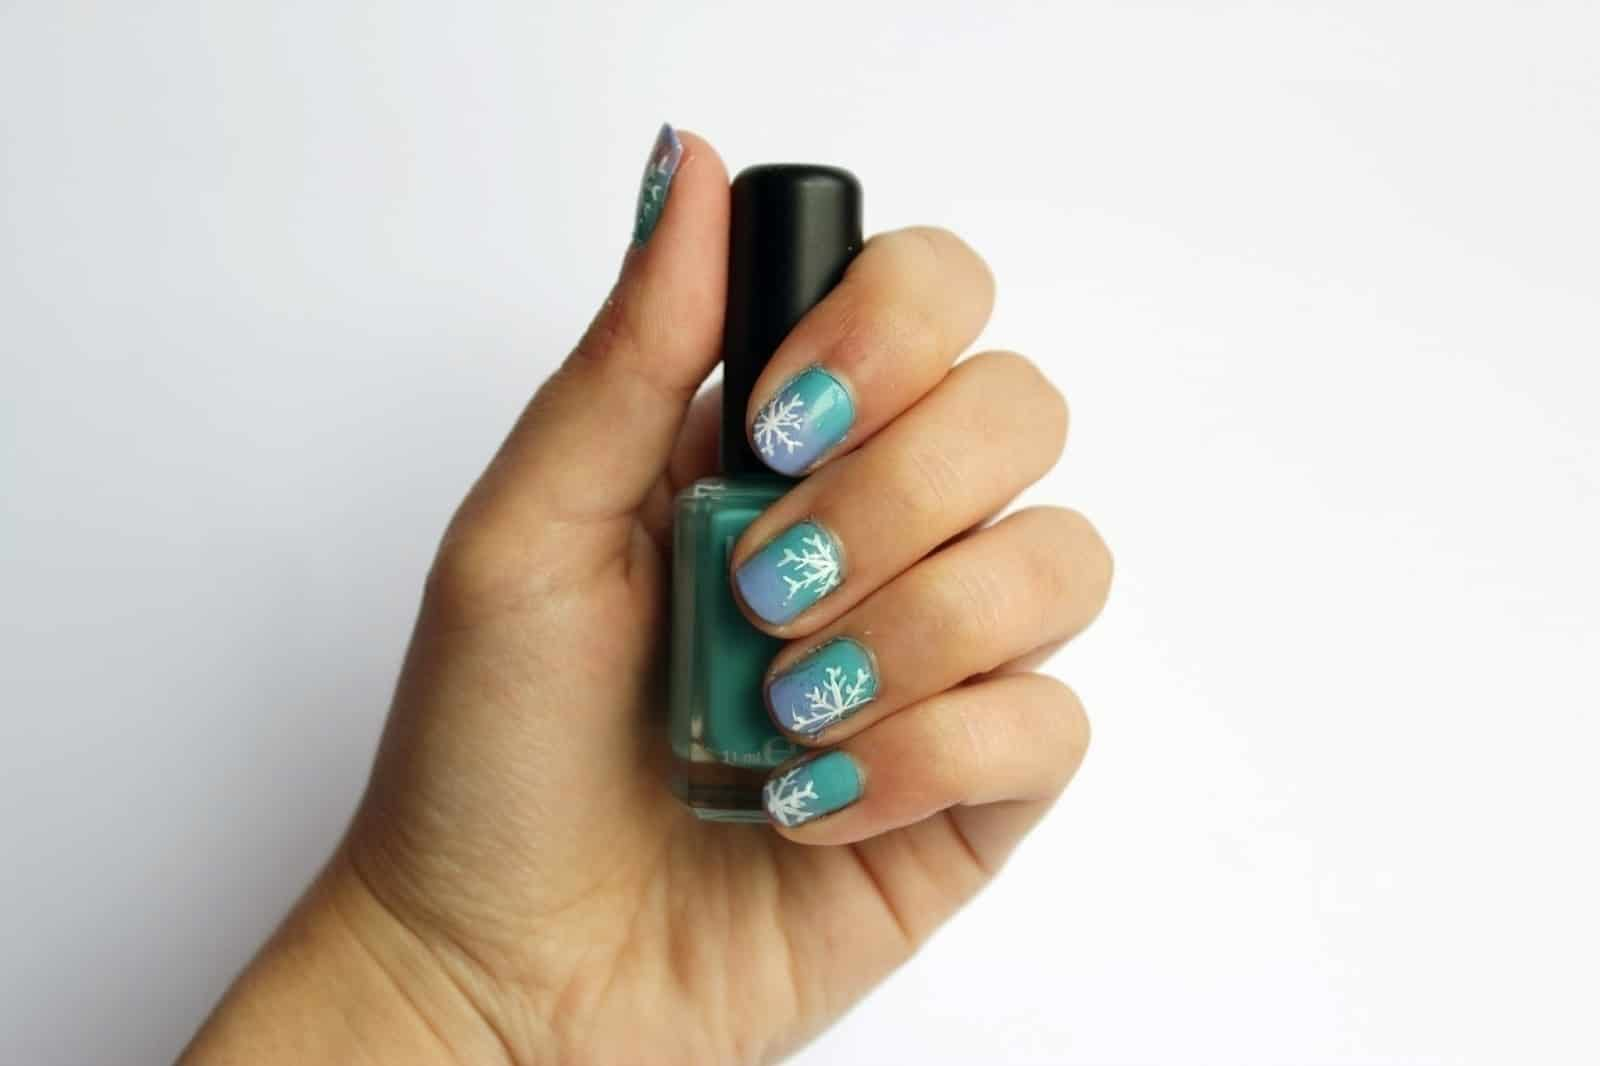 Blue ombre with white snowflakes